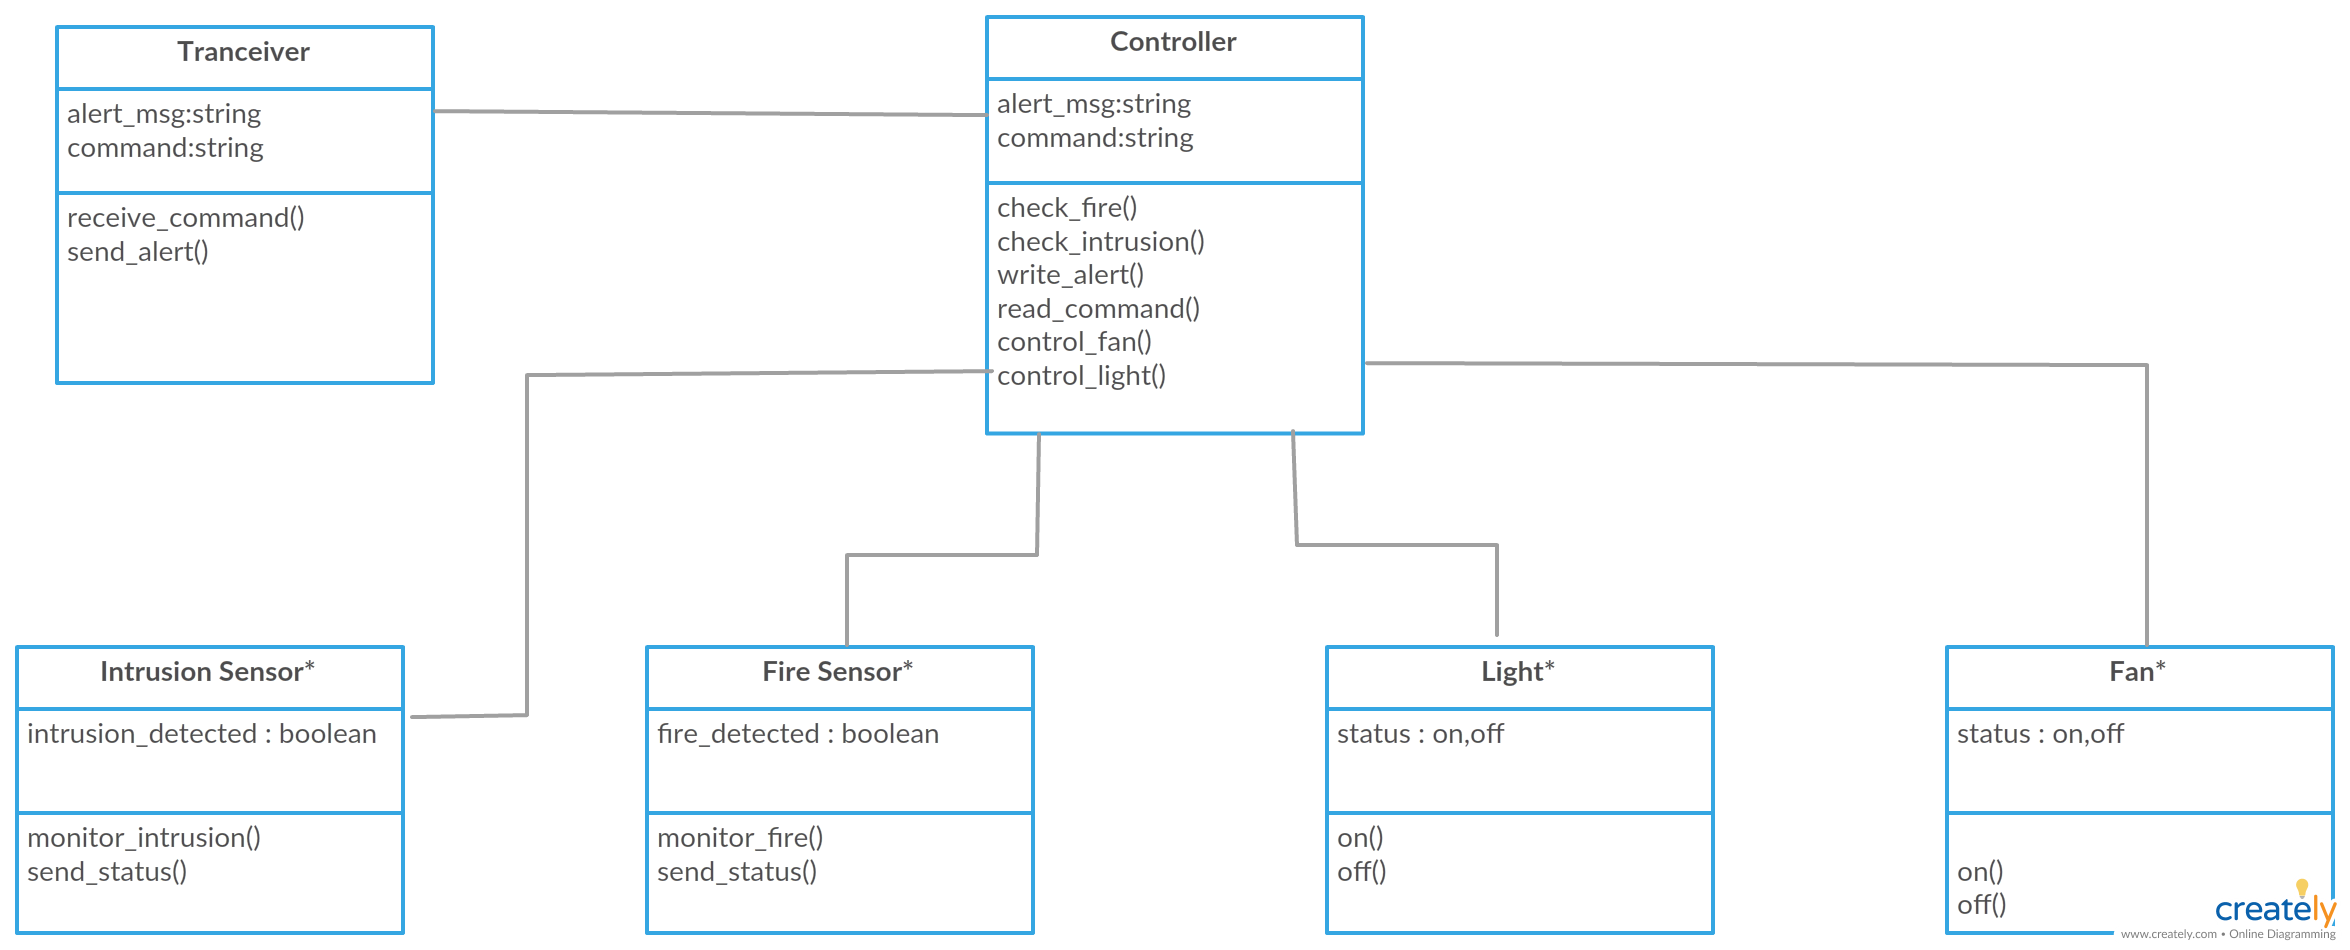 small resolution of uml class diagrams for home automation system you can edit this template and create your own